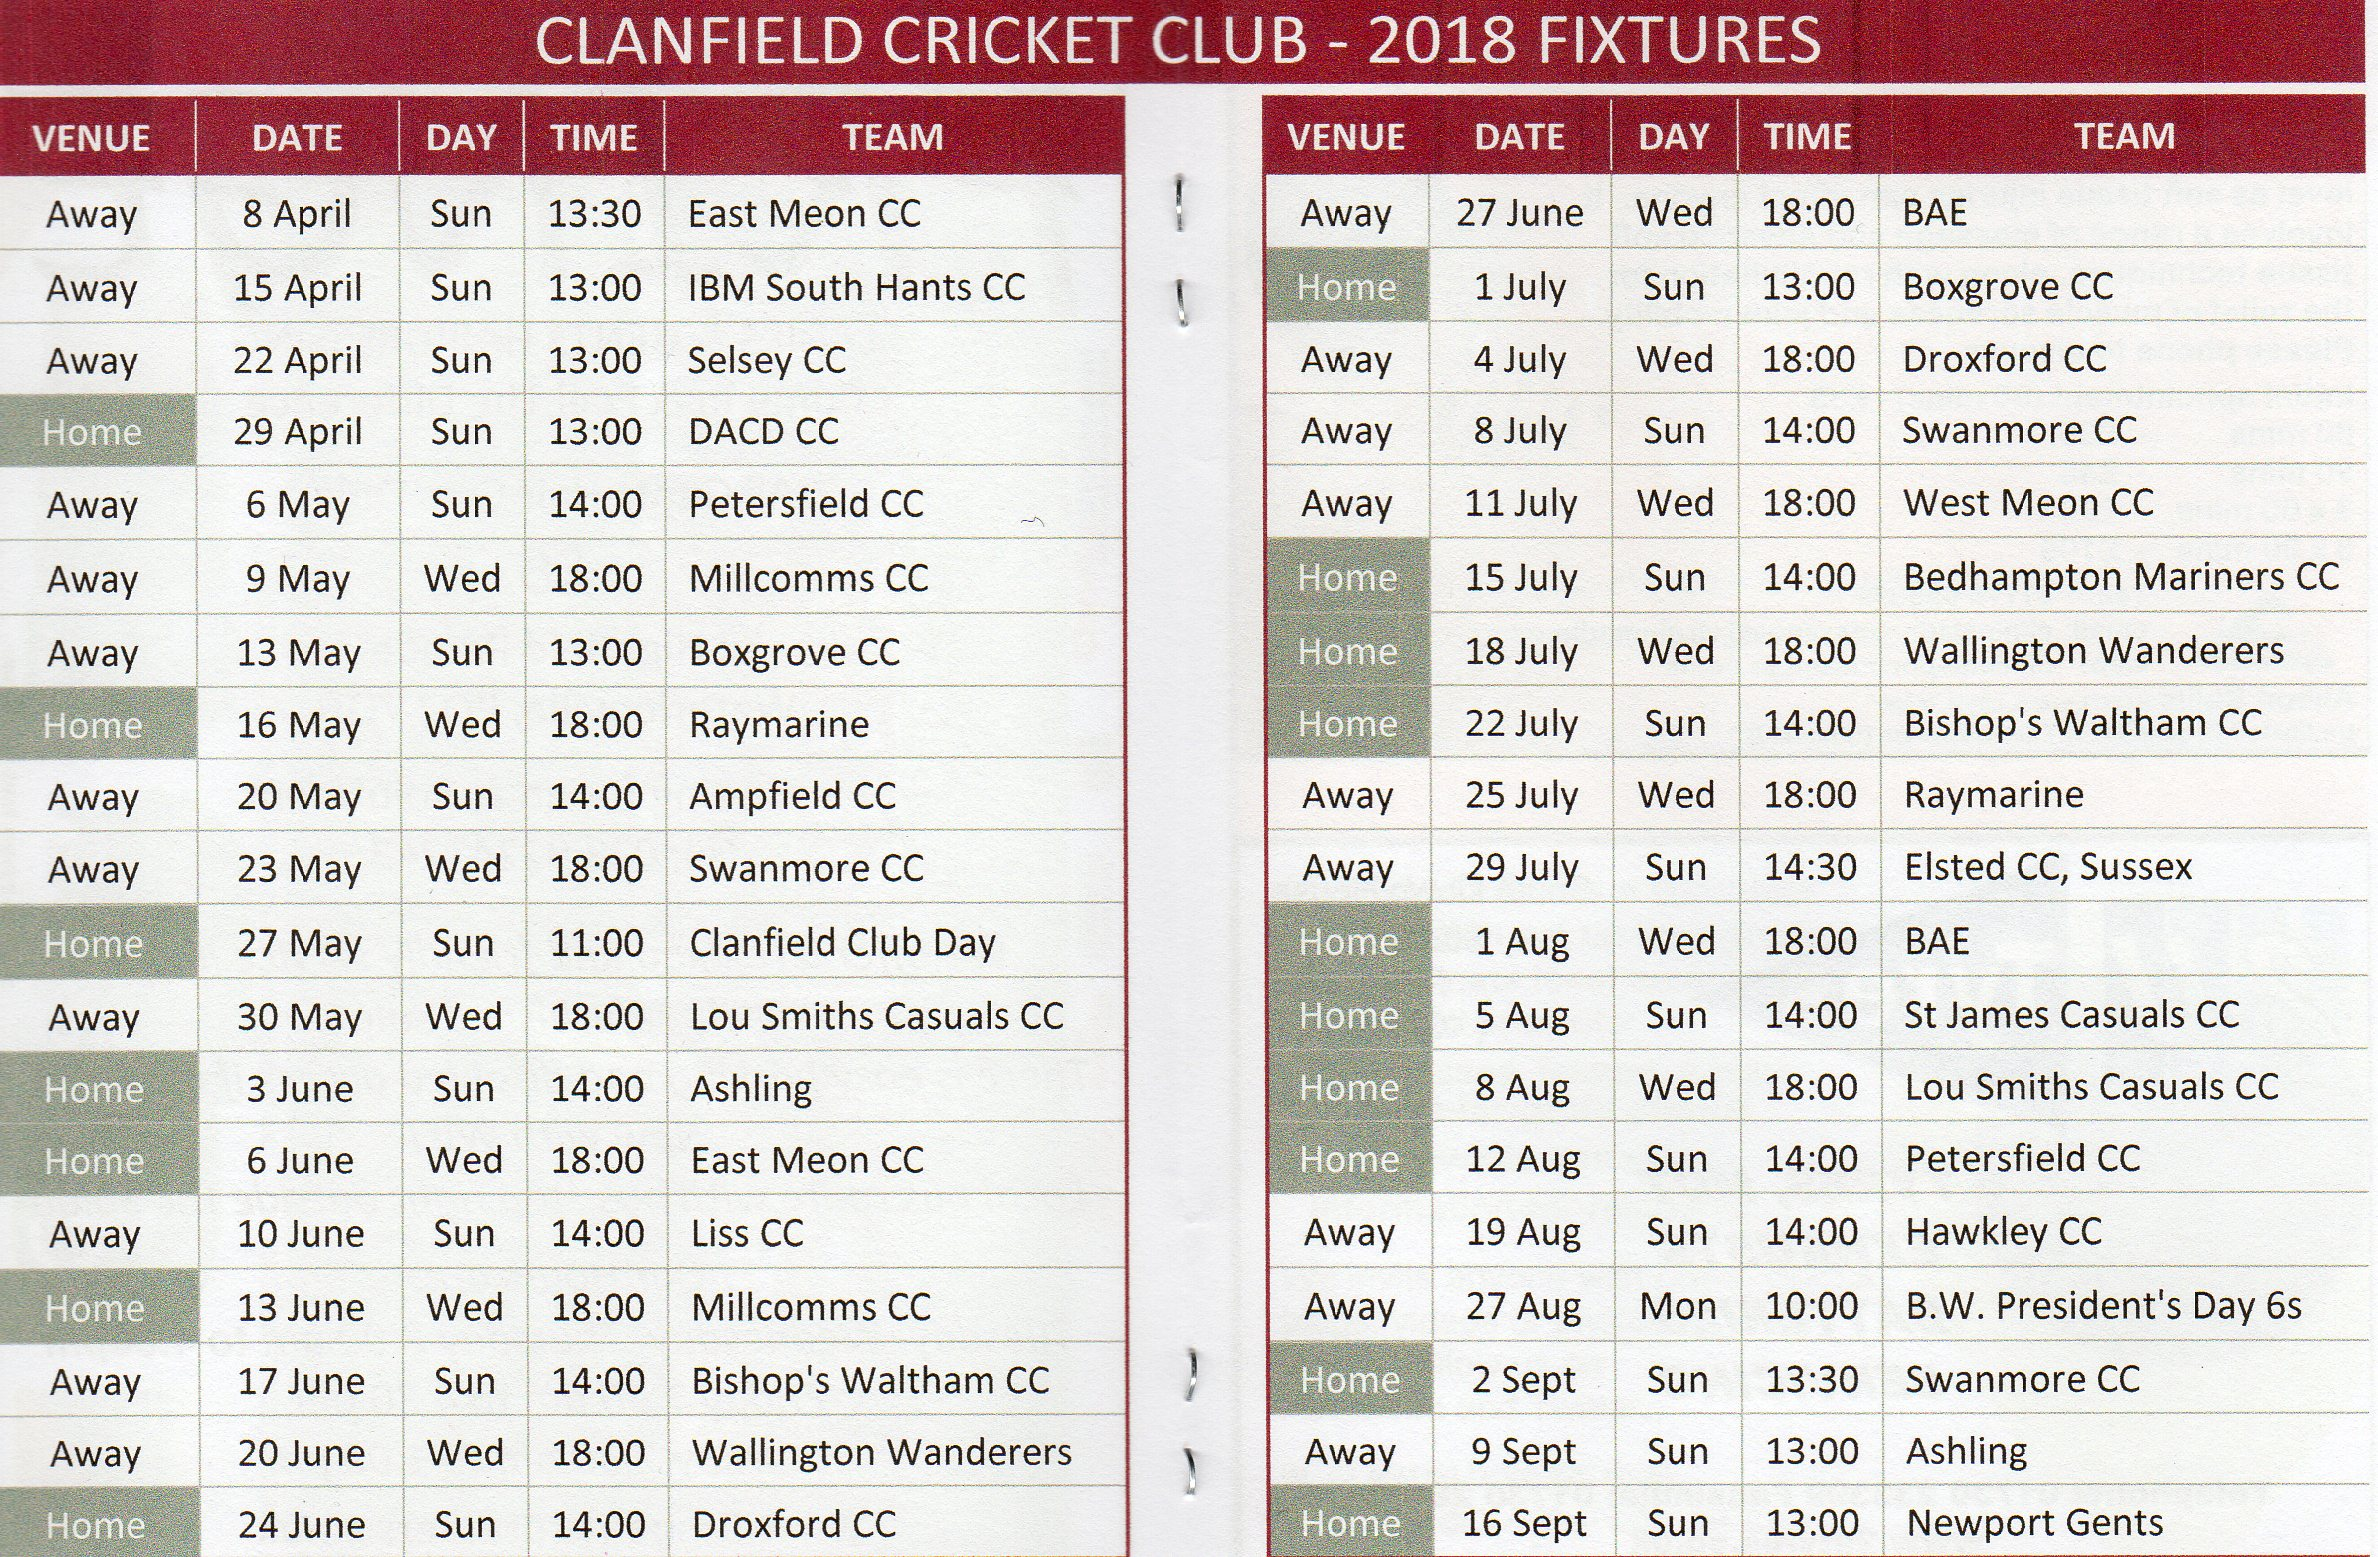 Clanfield Cricket Club Fixtures